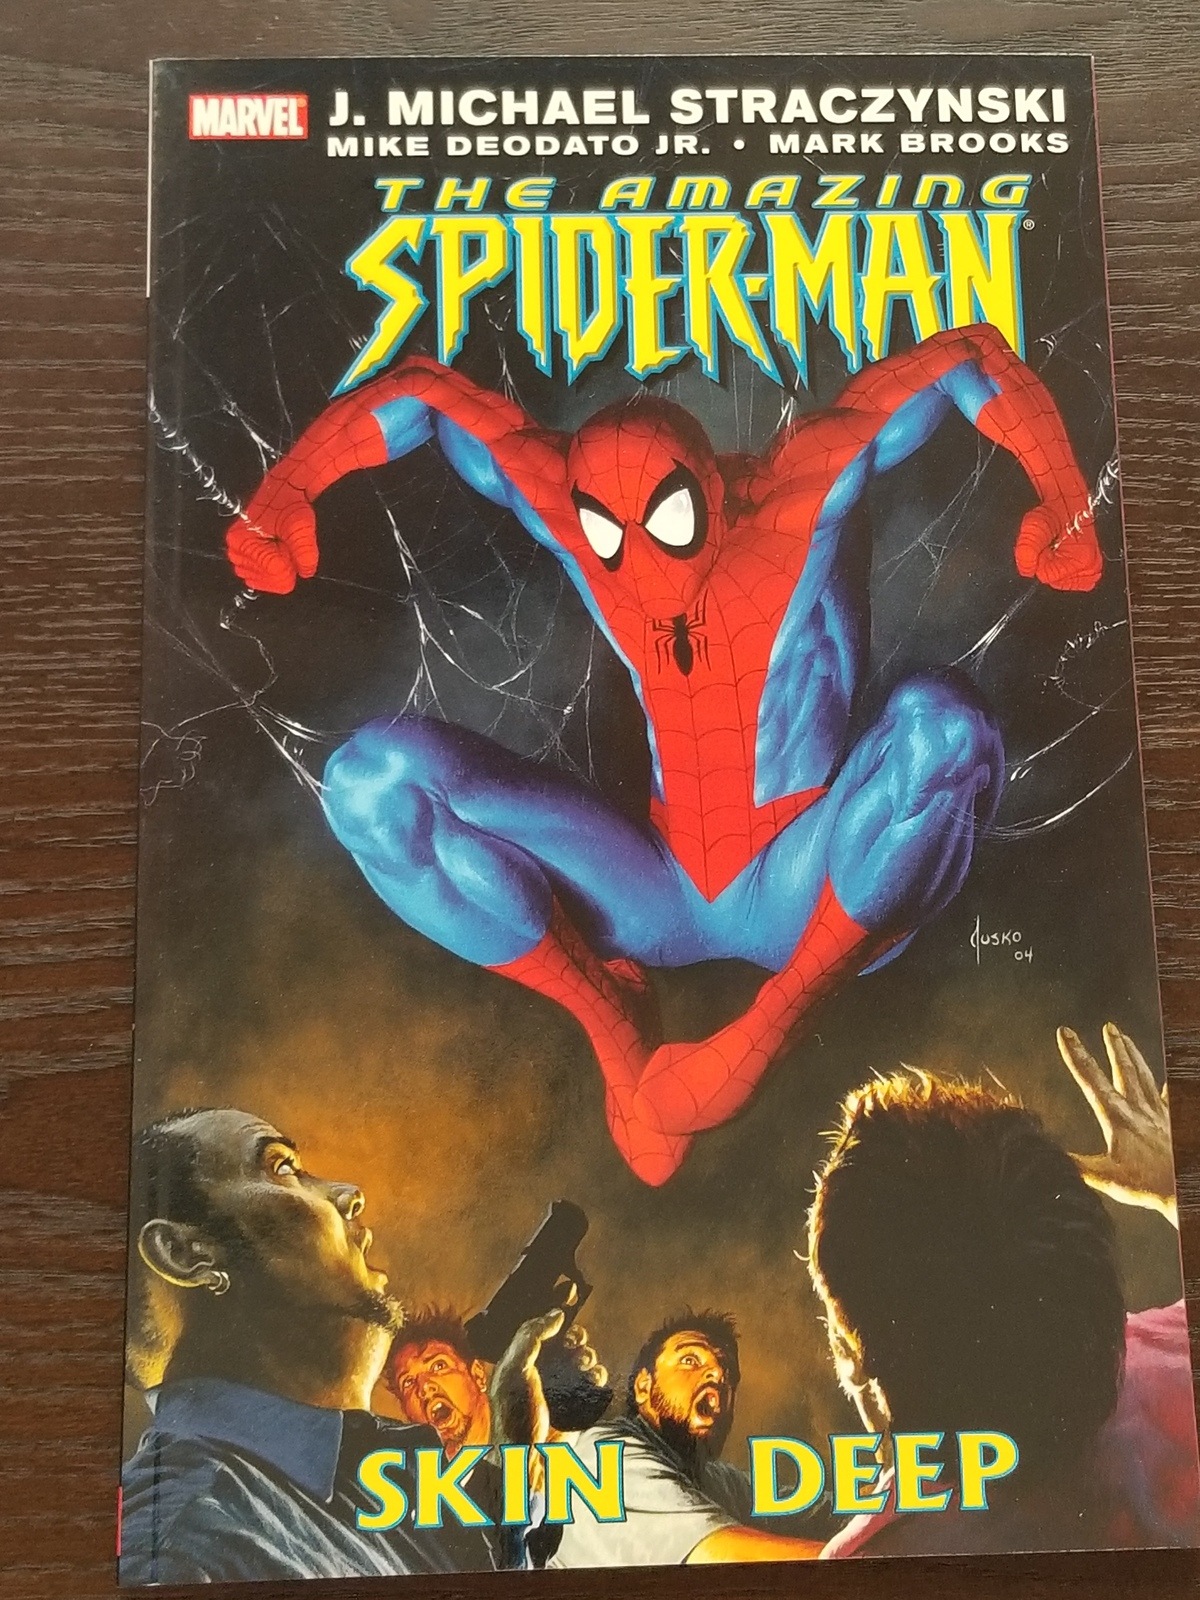 The Amazing Spider-man: Skin Deep Vol 9 Softcover Graphic Novel